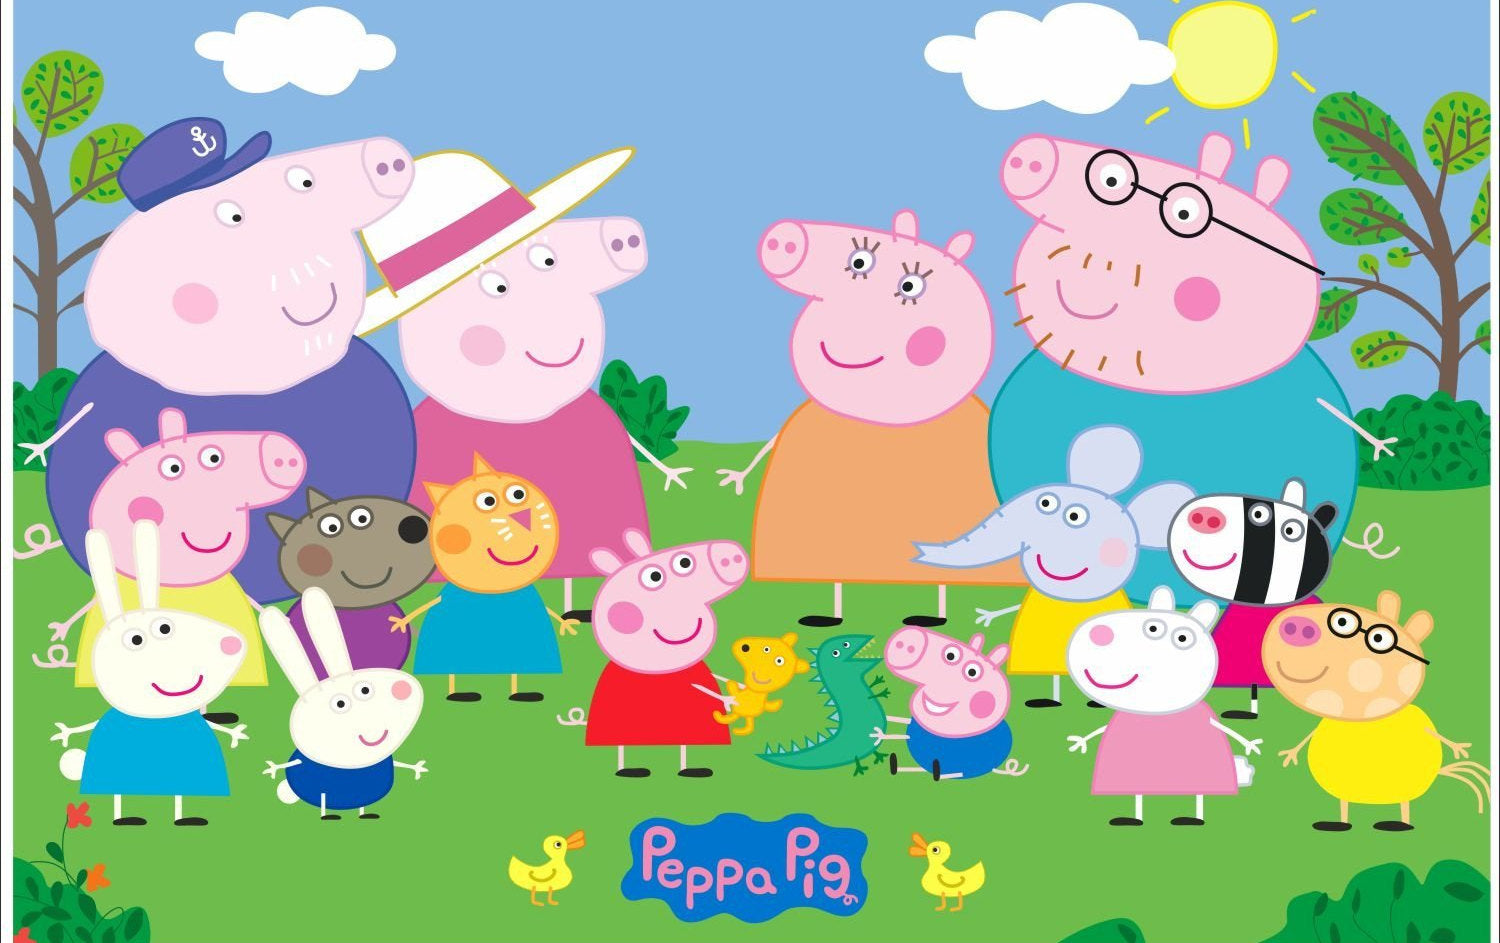 Peppa Pig Wallpaper For Kid S Room Wallpaper Decal Version2